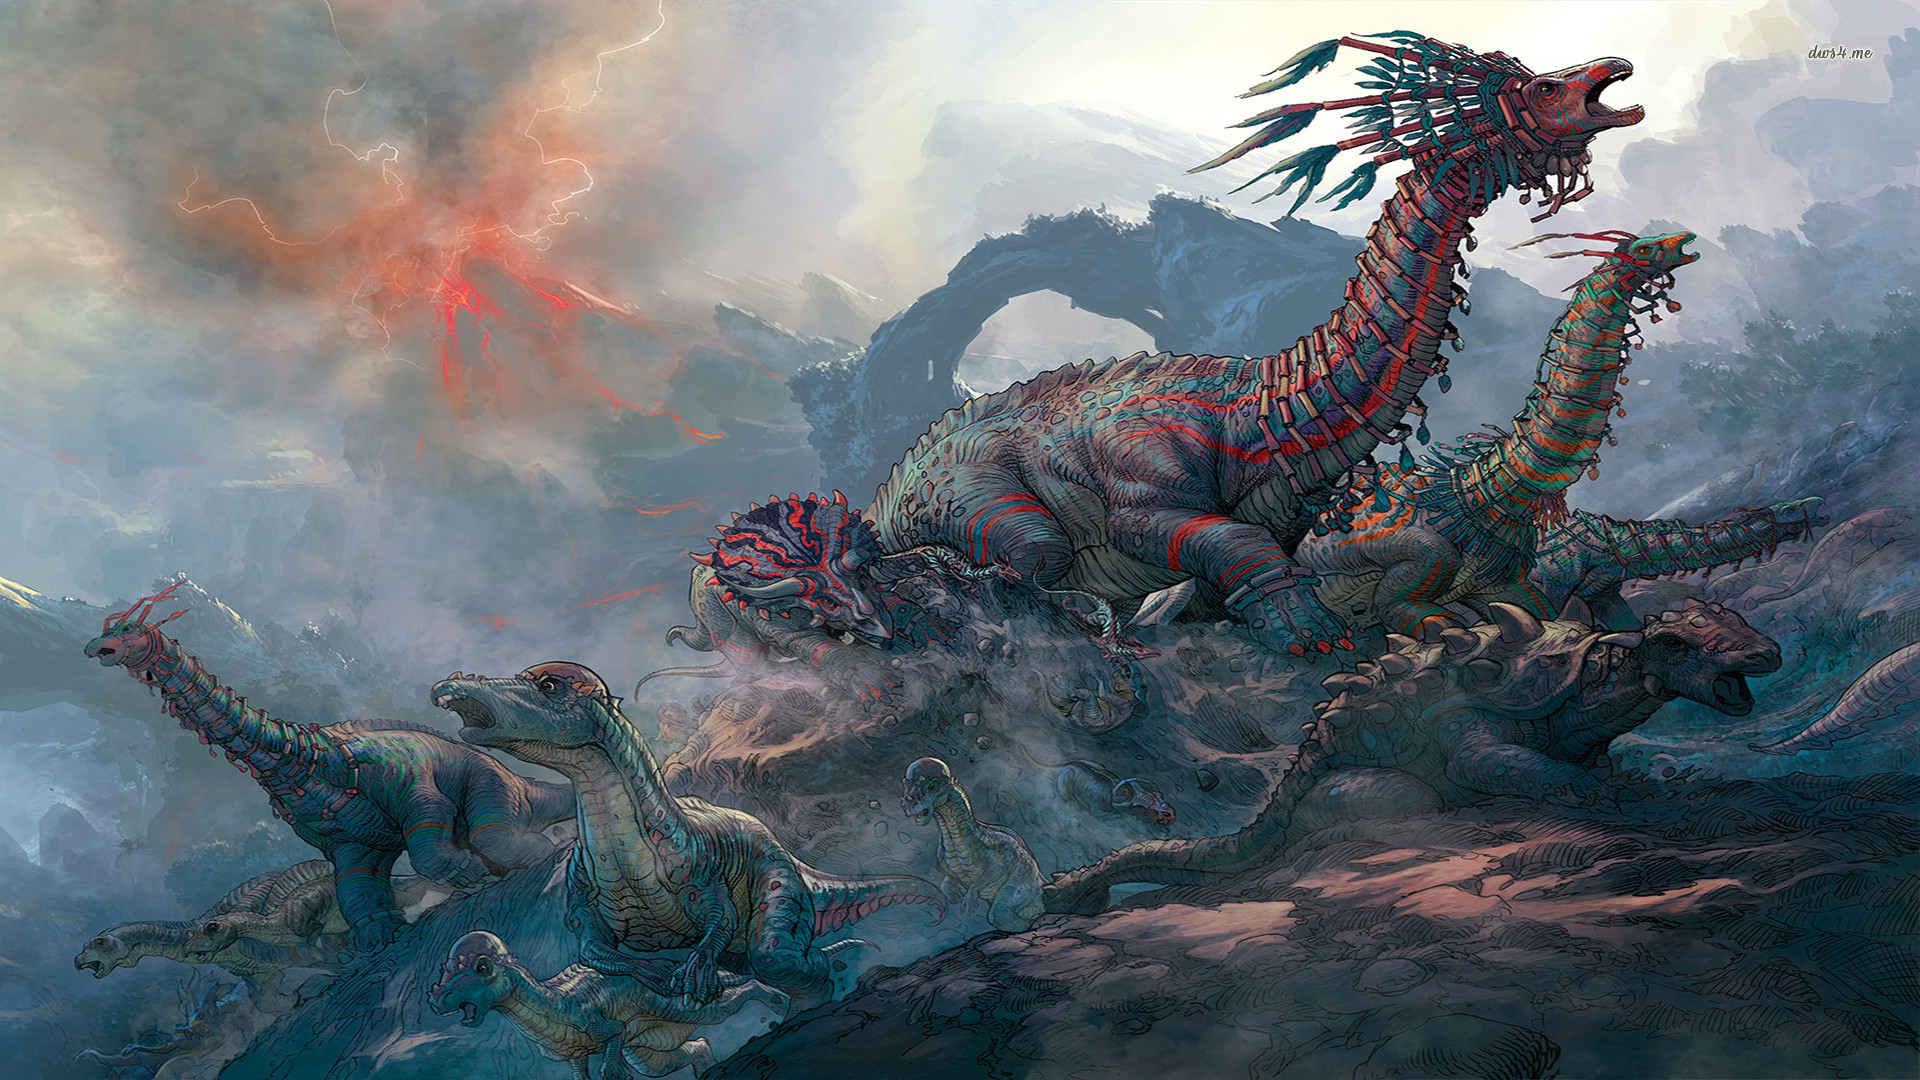 1920x1080 HD Wild Dinosaur Colony 1080p Wallpaper Full Size - HiReWallpapers .